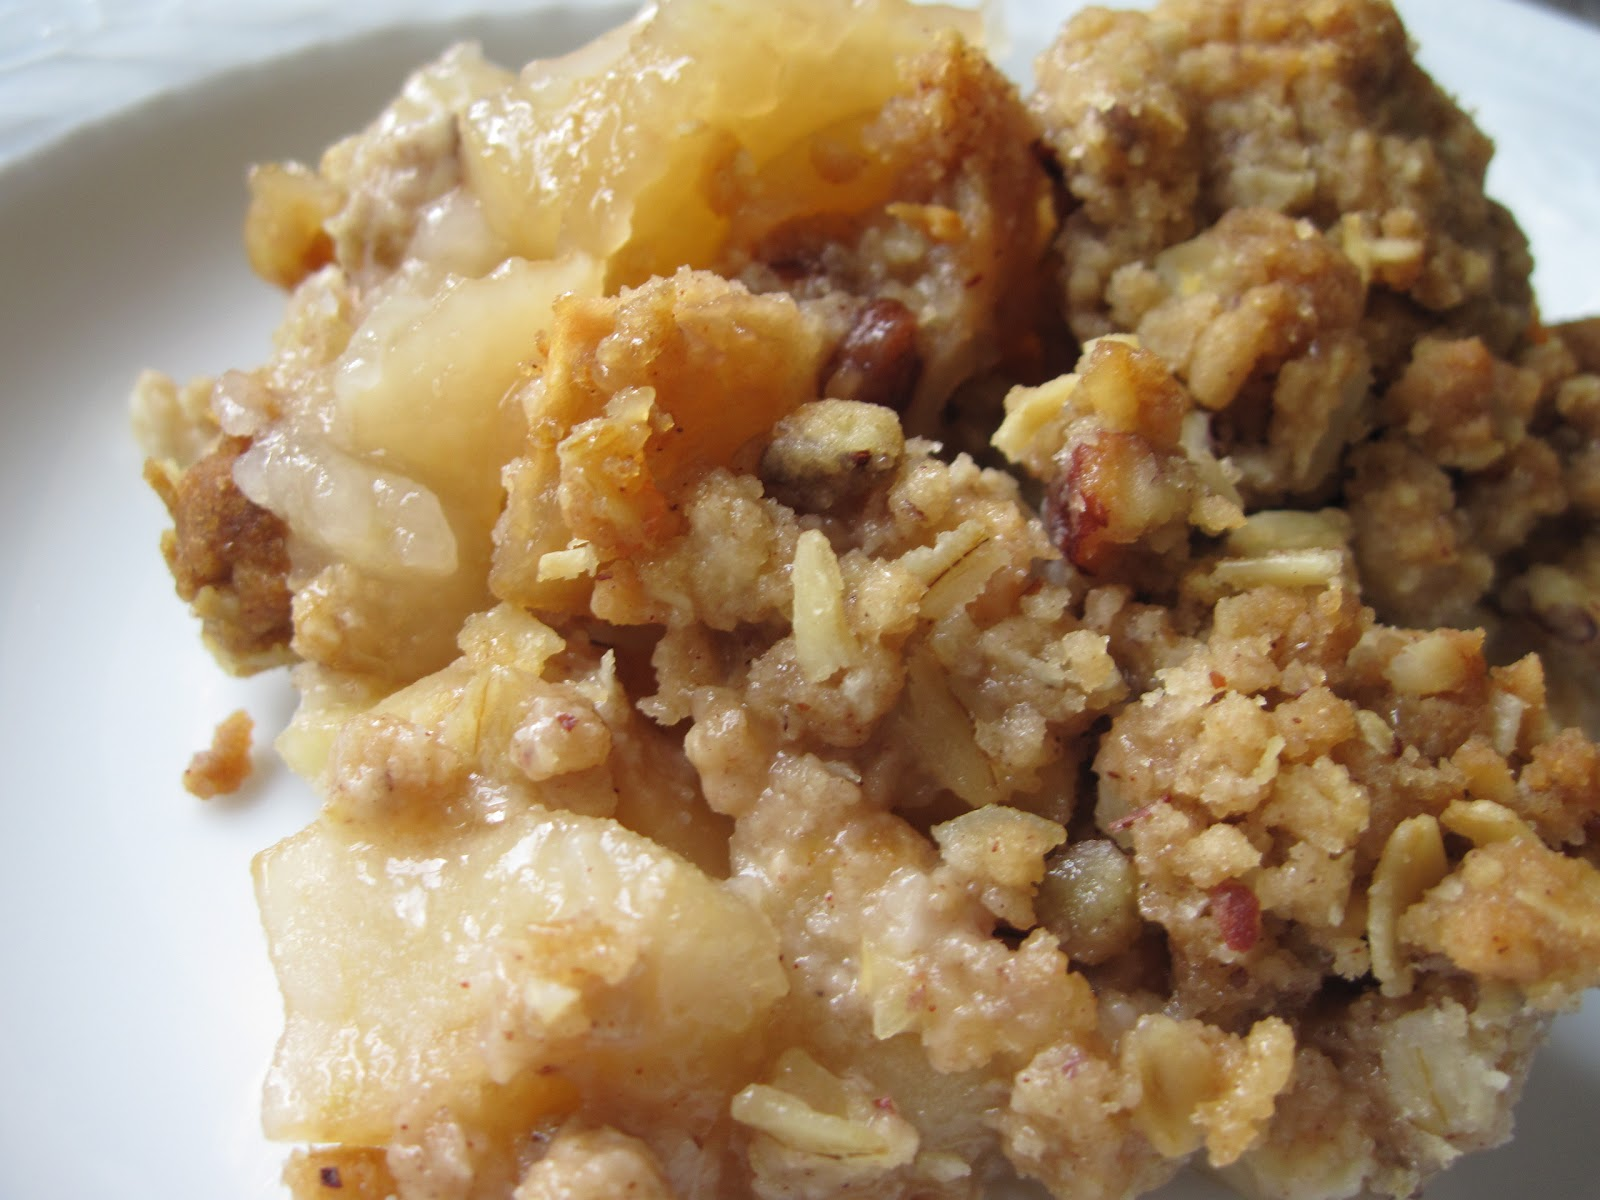 Apple pear crumble a recipe yankee kitchen ninja for Apple pear recipes easy